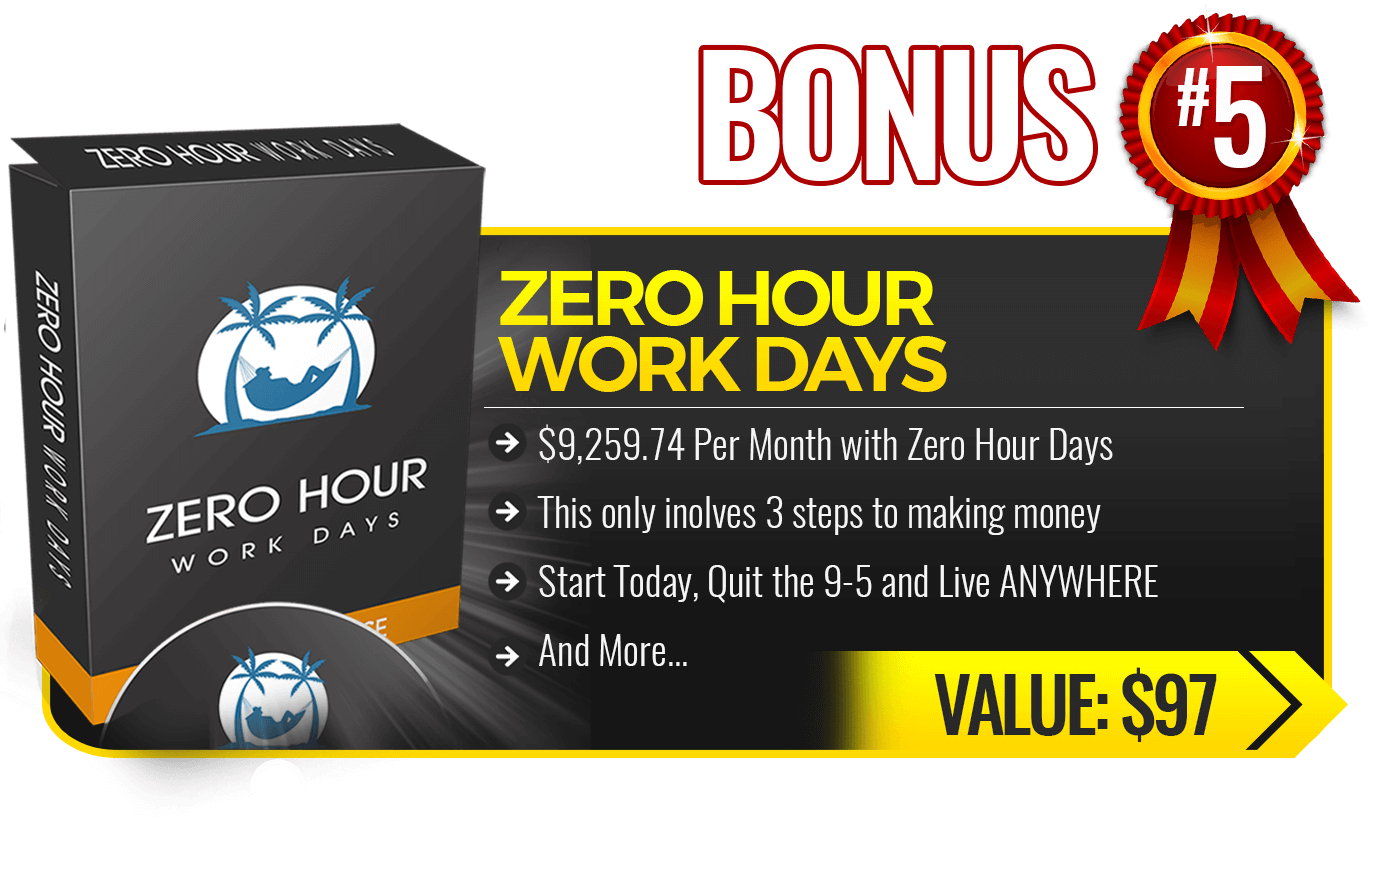 5. Zero Hours Work Days